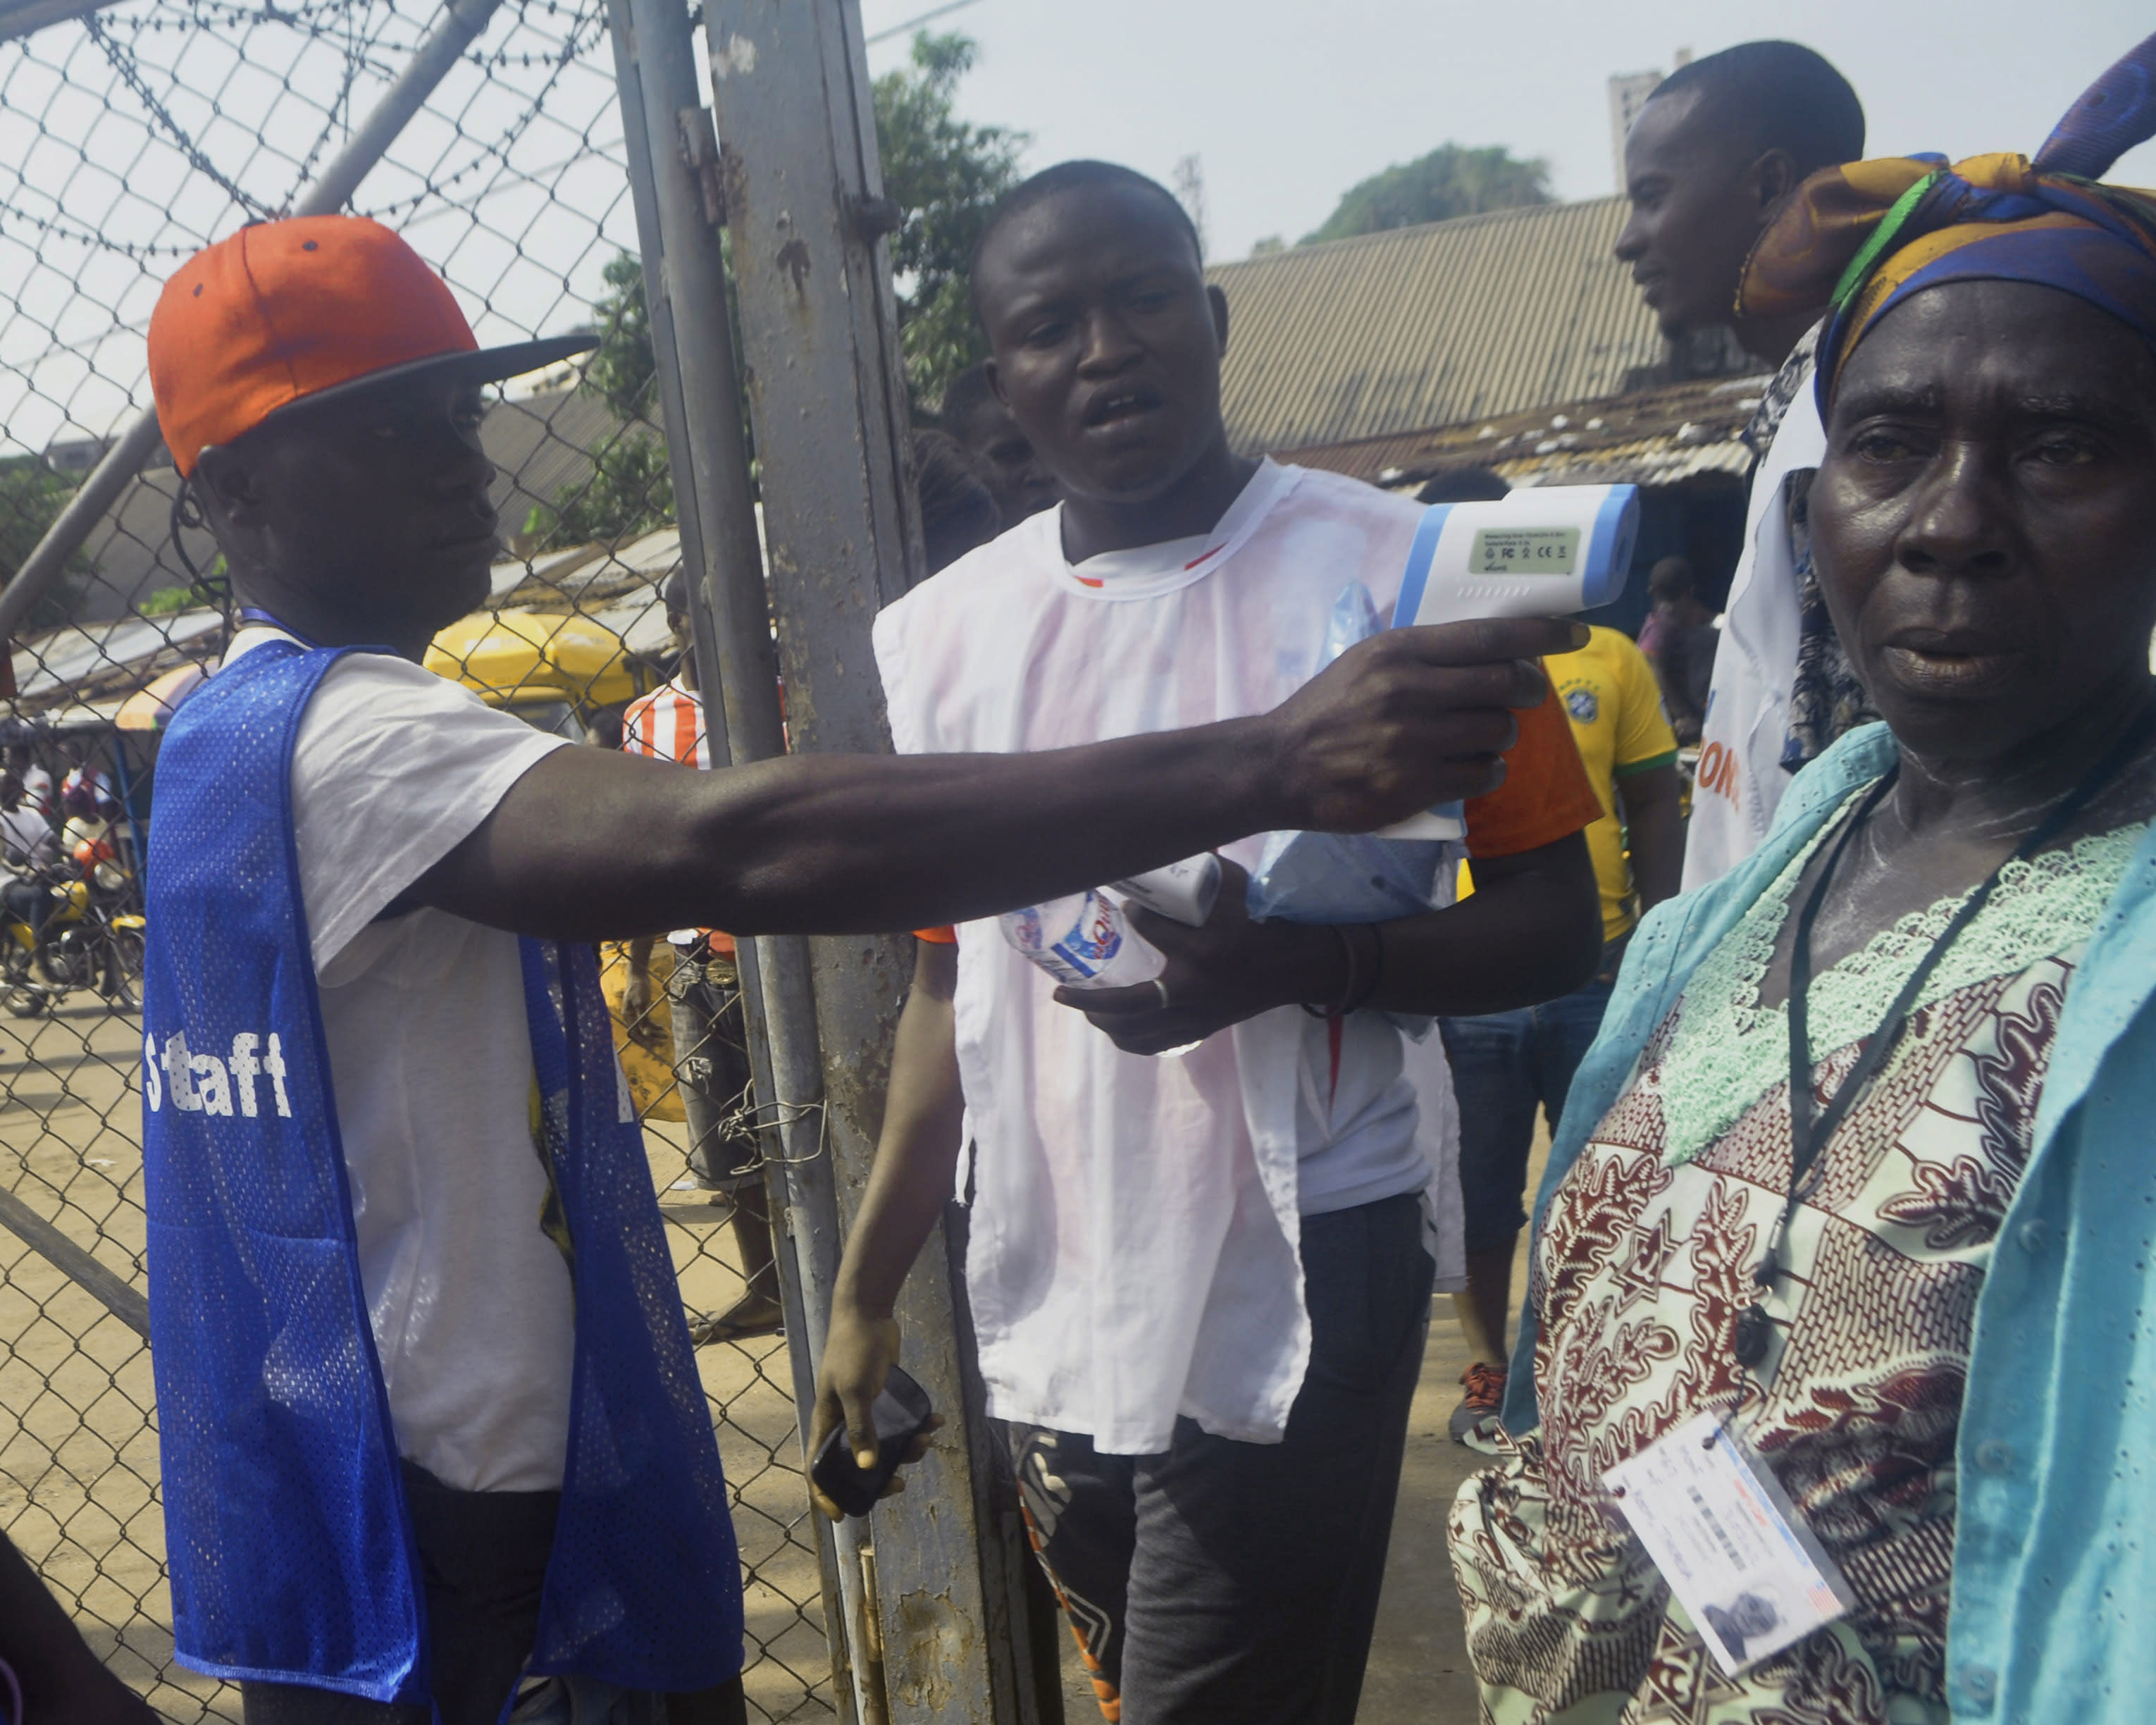 Liberia holds Senate vote amid Ebola fears